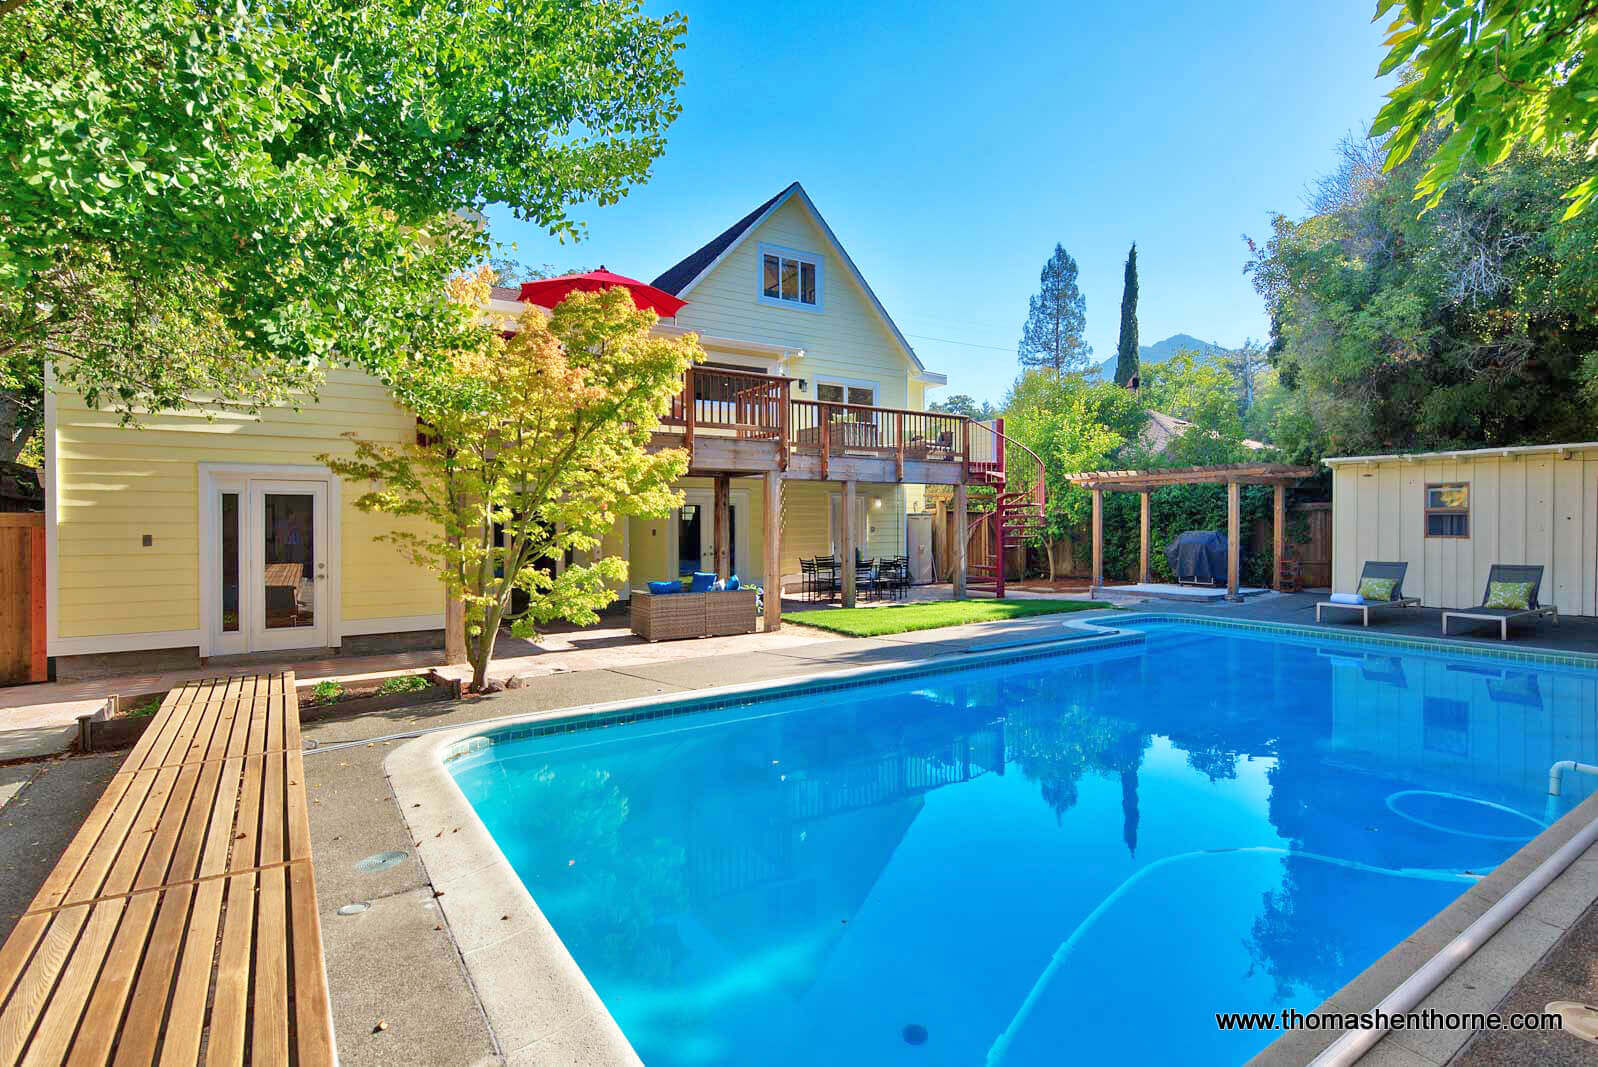 Swimming Pool and home